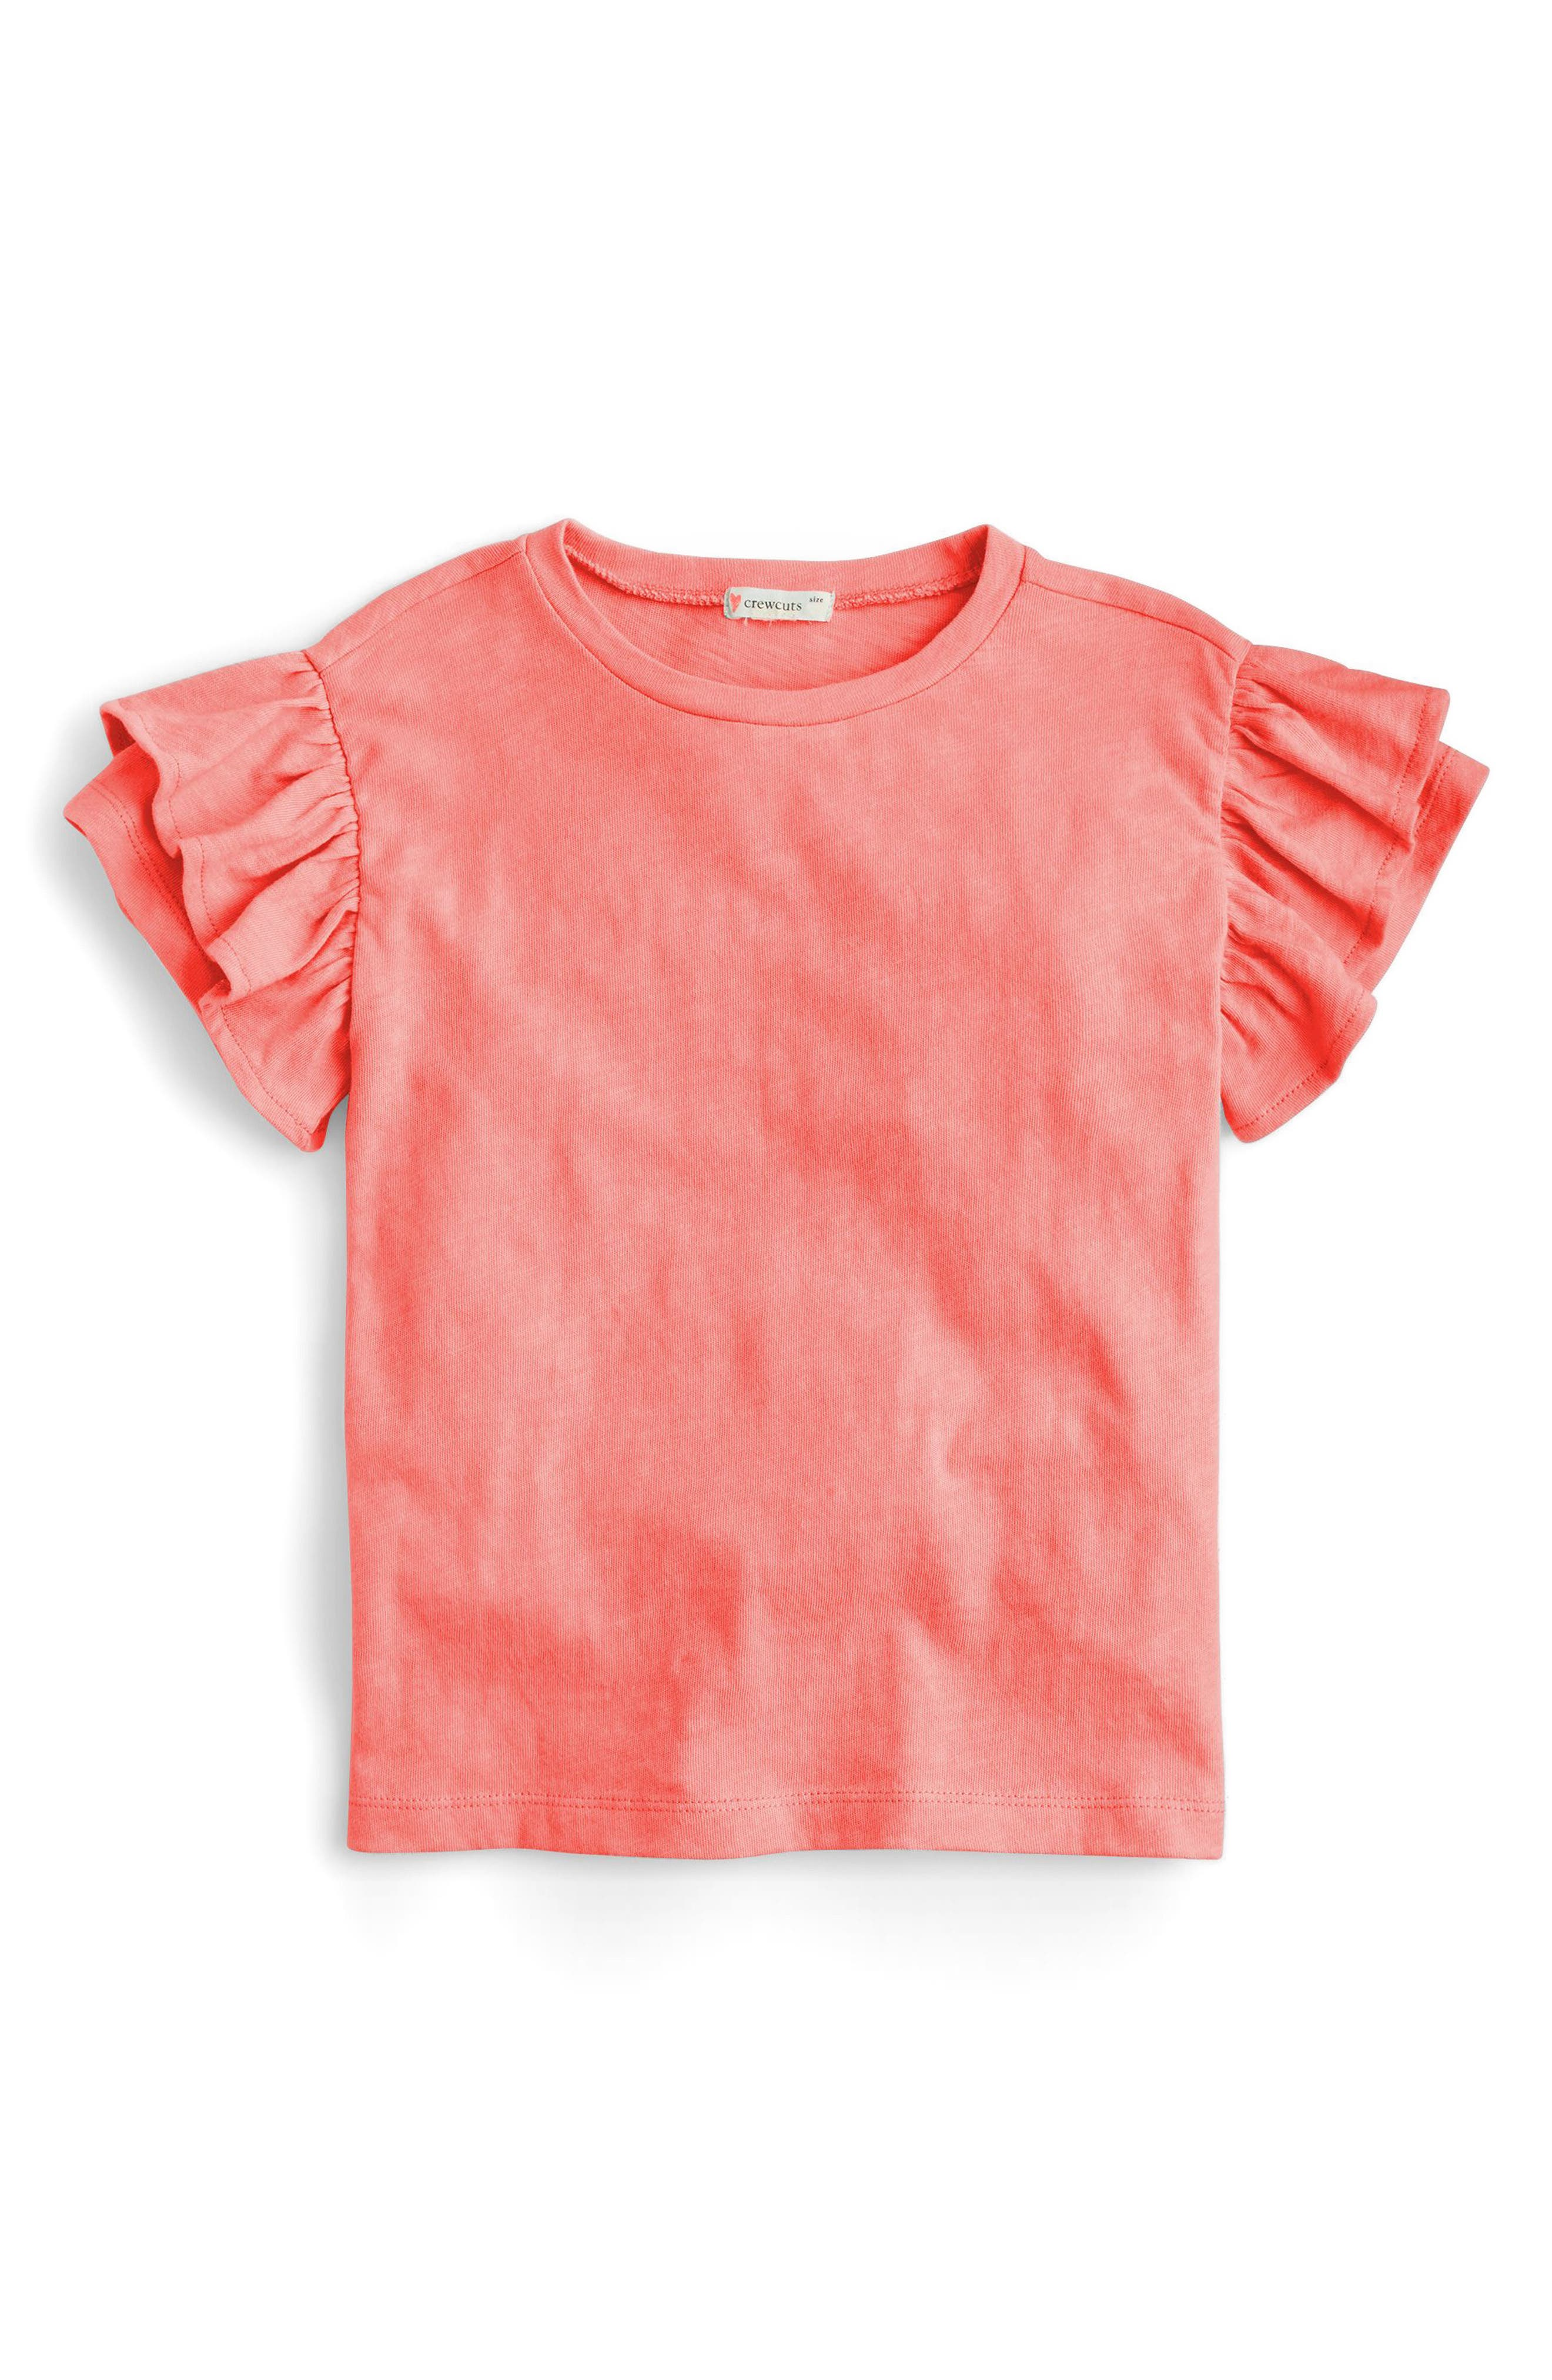 Flutter Sleeve T-Shirt,                             Main thumbnail 1, color,                             Coral Blossom